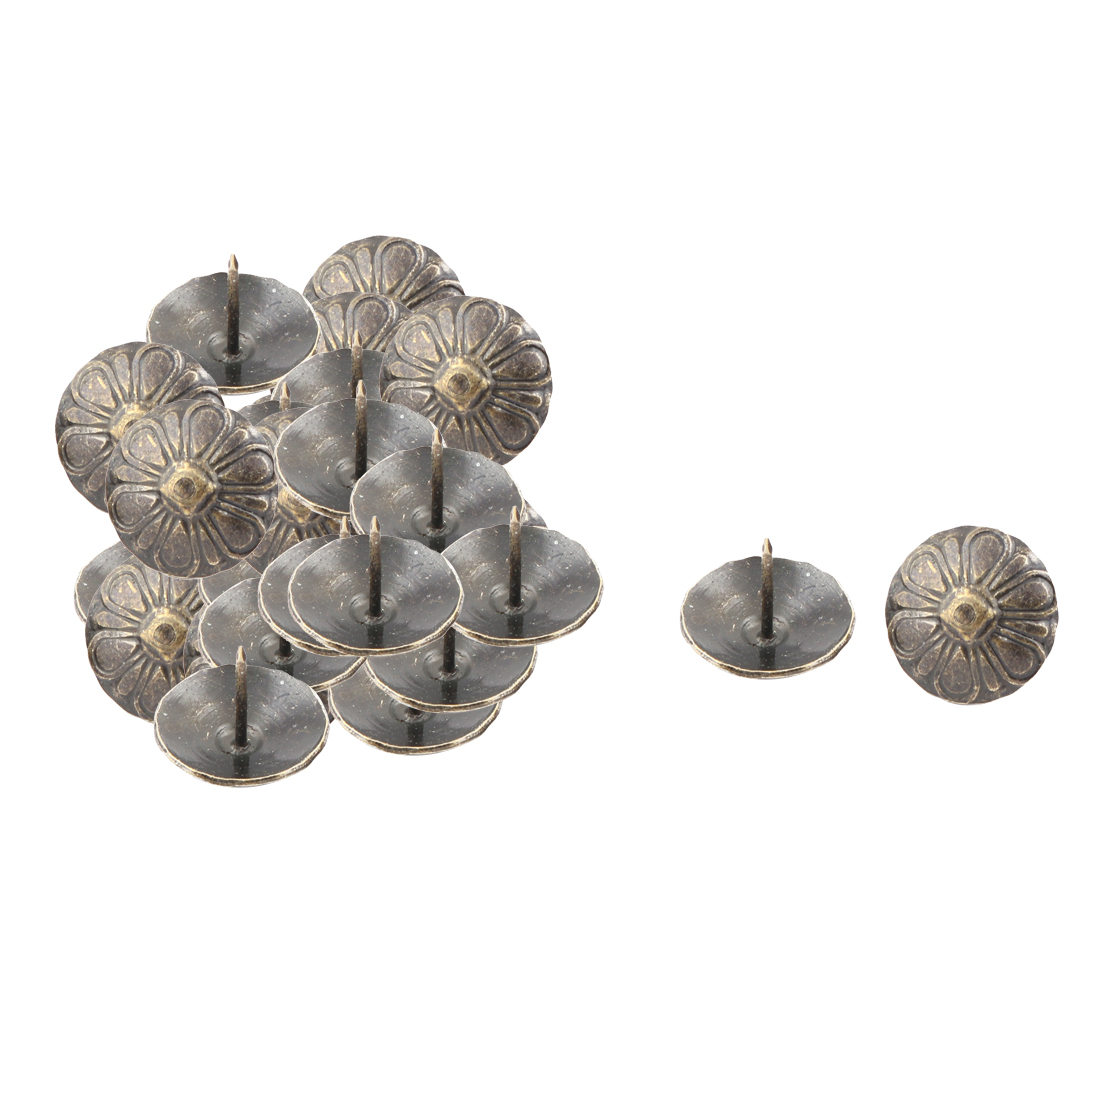 Furniture Vintage Flower Print Round Pin Decorative Domed Nail Bronze Tone 20pcs